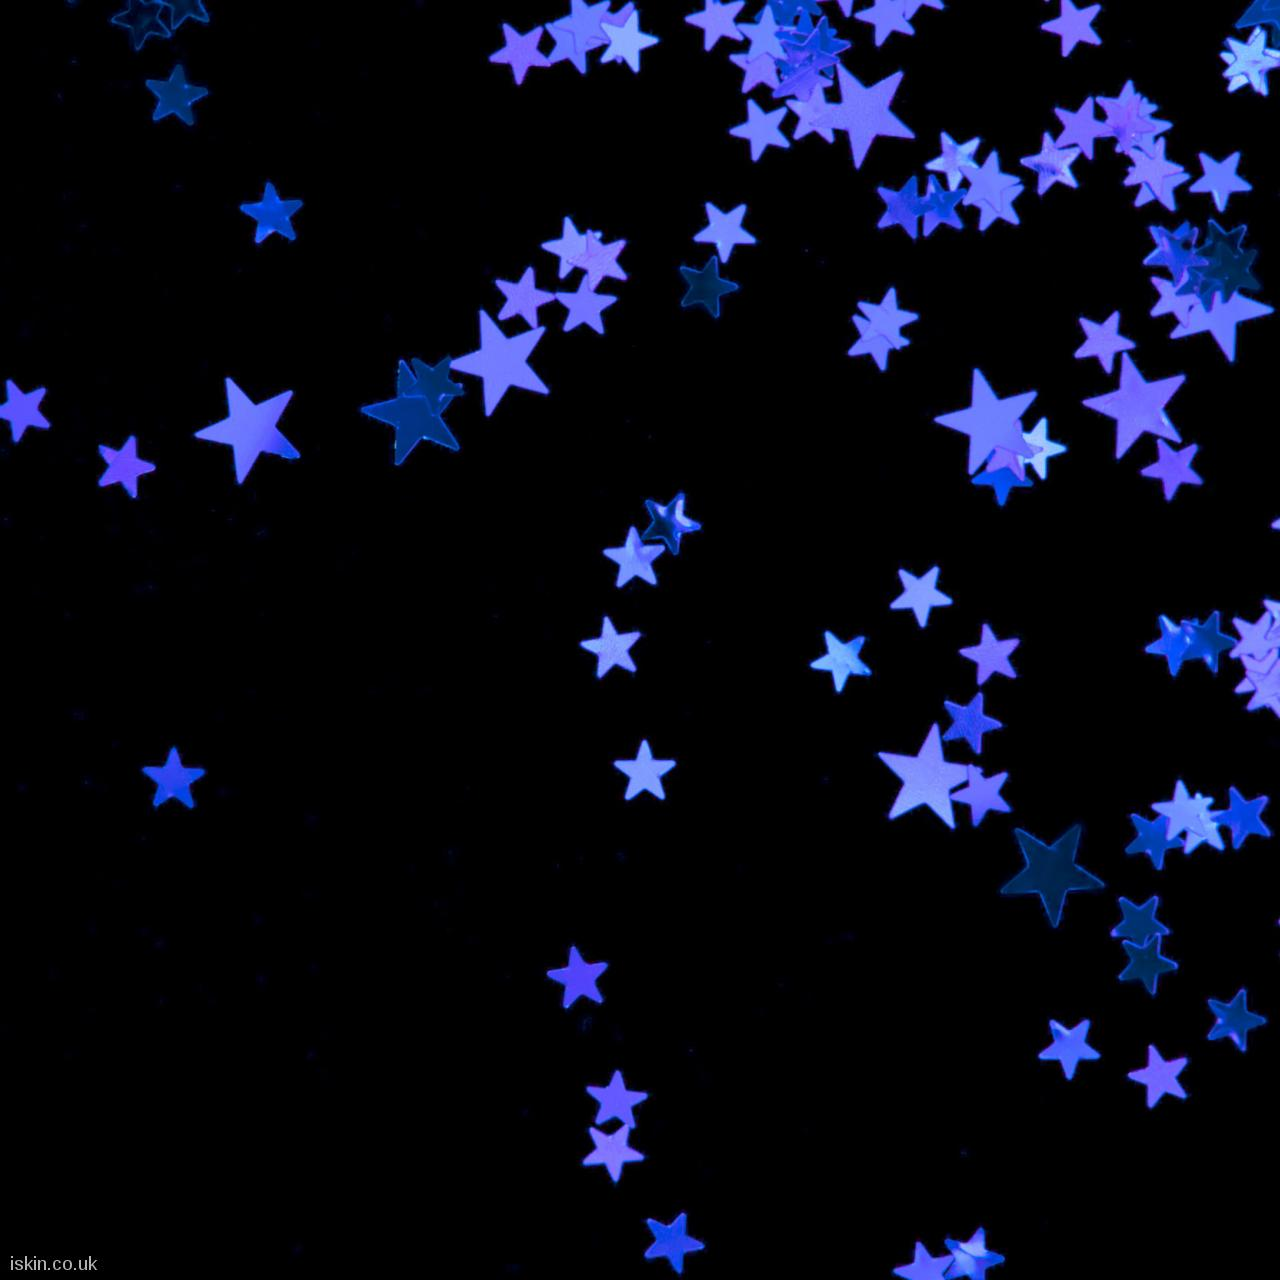 purple stars Desktop Wallpaper | iskin.co.uk